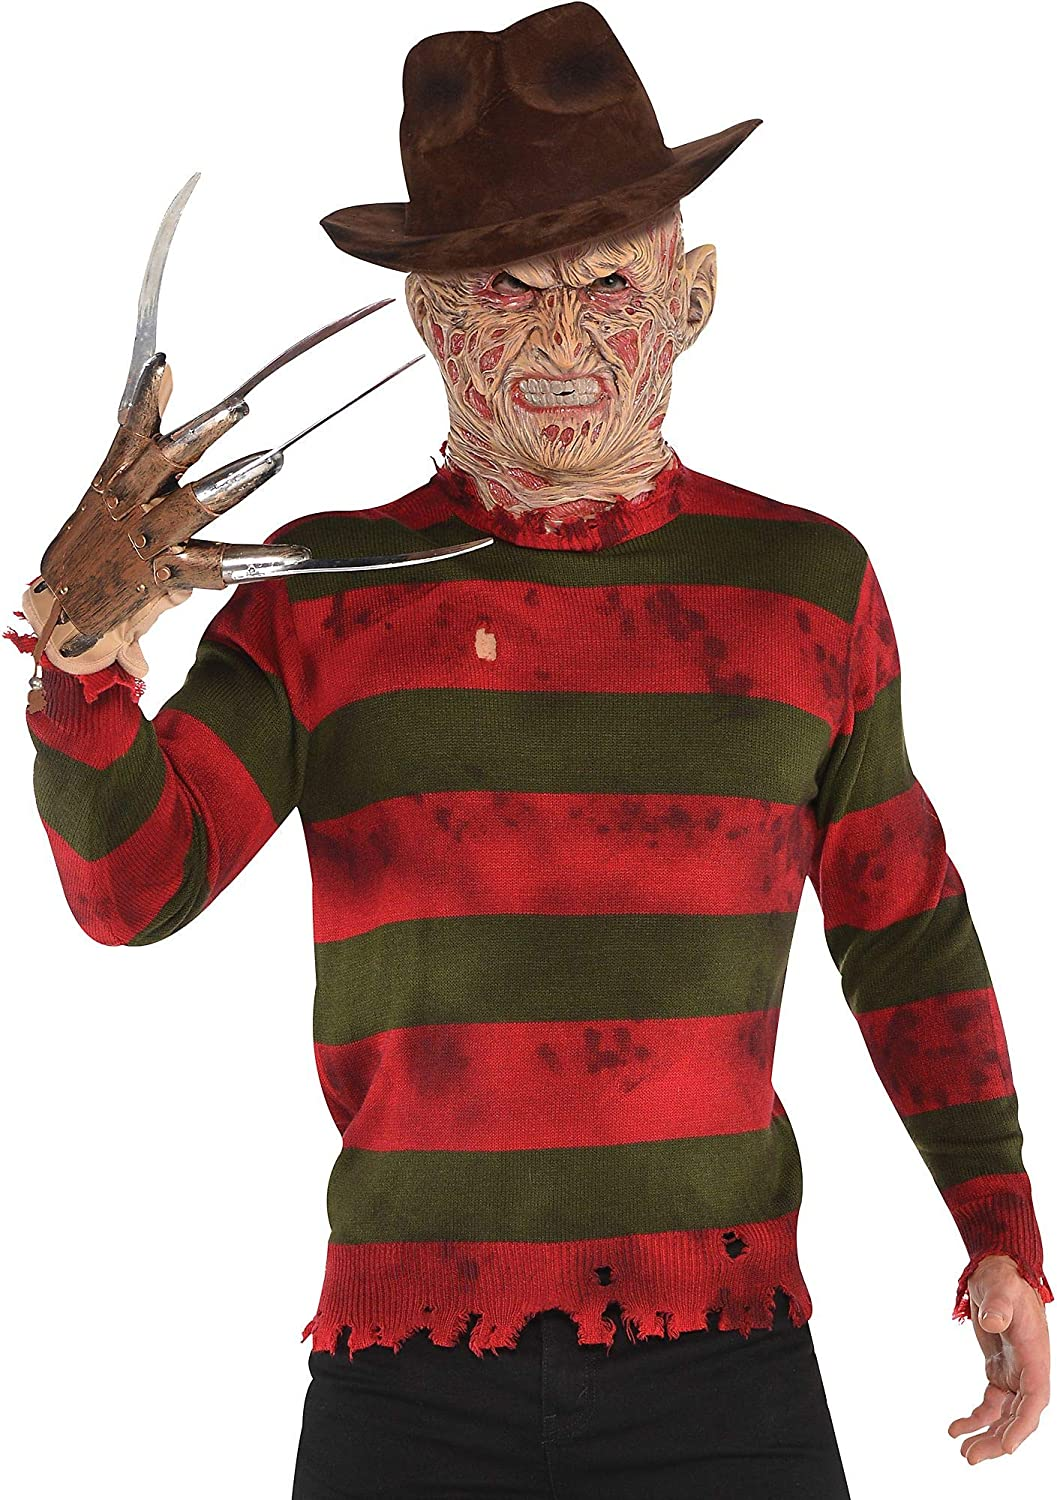 SUIT YOURSELF Traje Usted Mismo Freddy Krueger suéter para Adultos ...